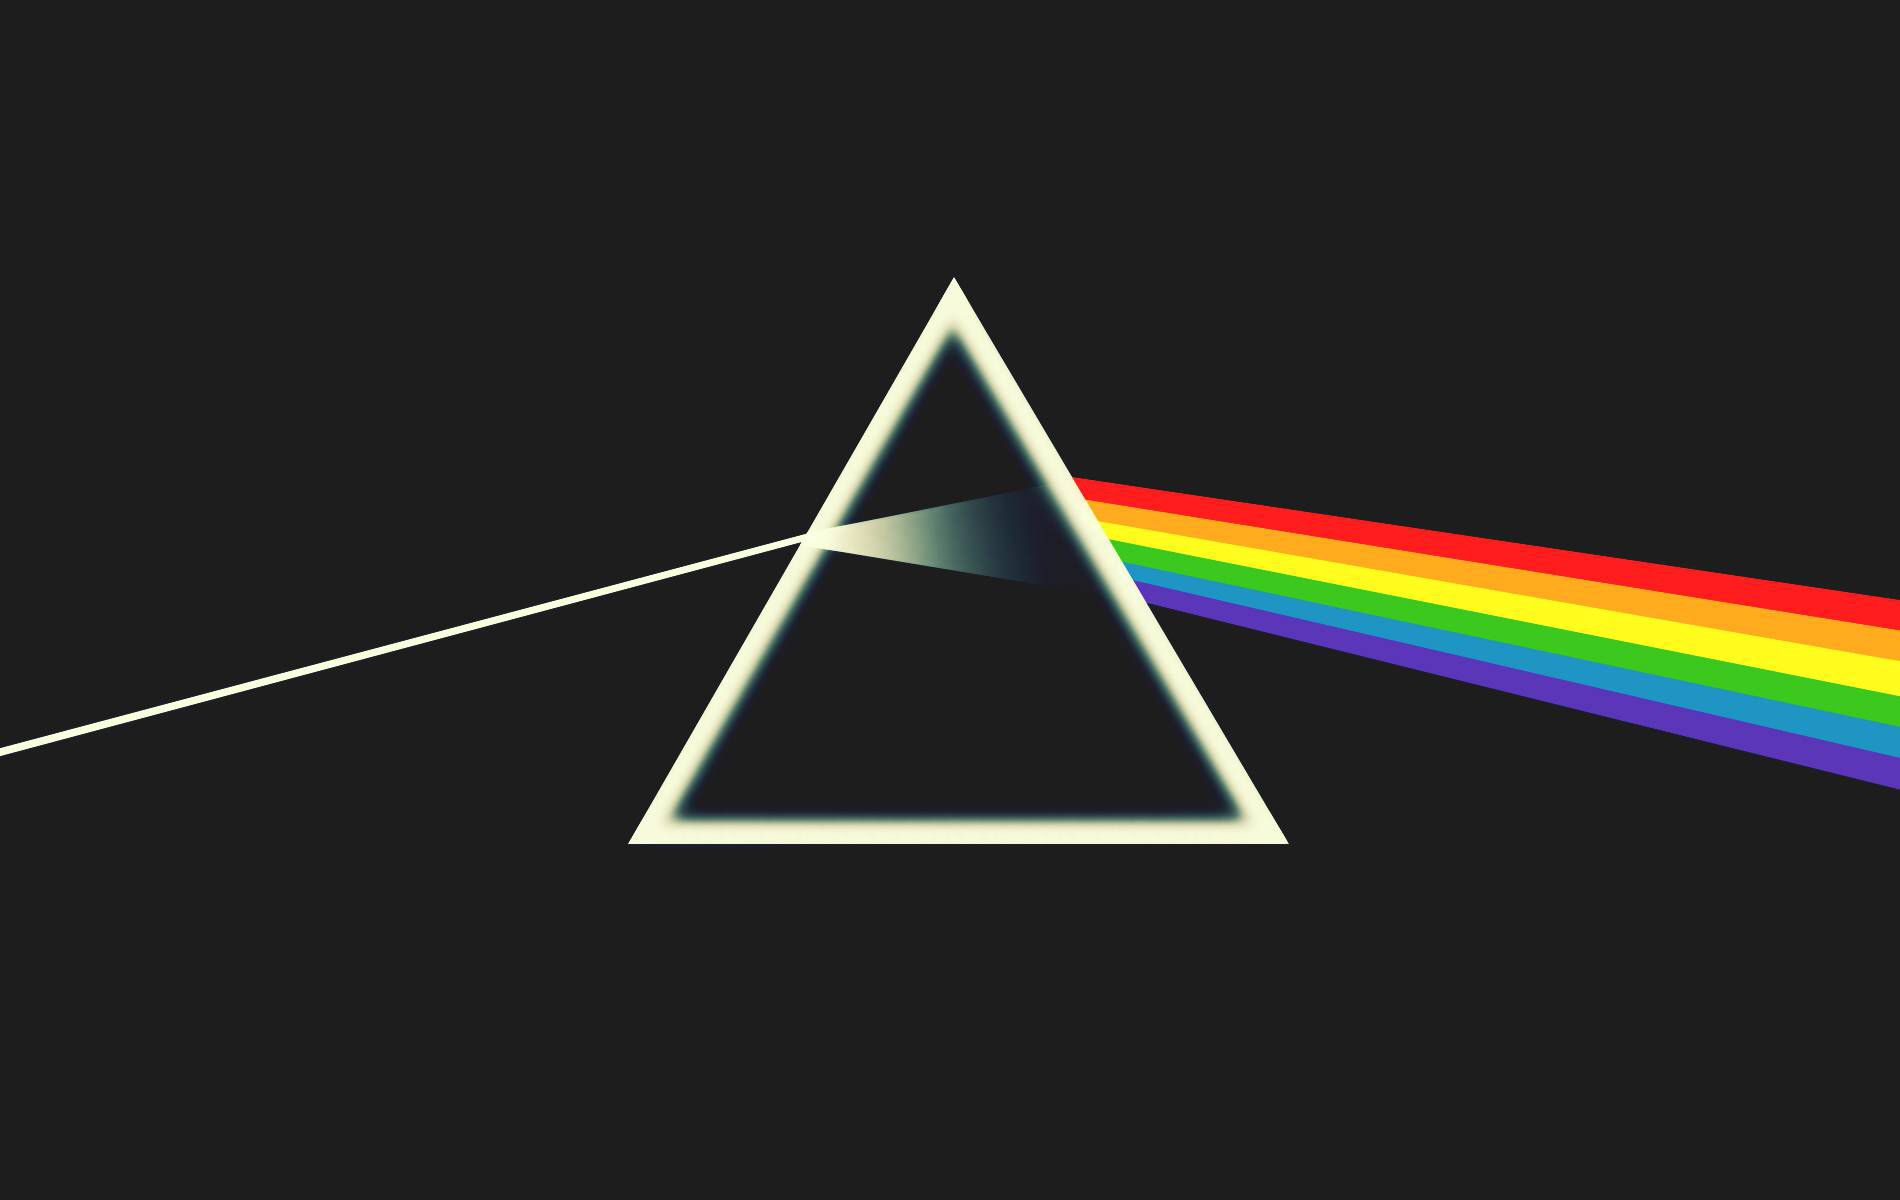 Image from http://www.b-wave.be/blog/wp-content/uploads/2015/03/pink-floyd-dark-side-of-moon.jpg.